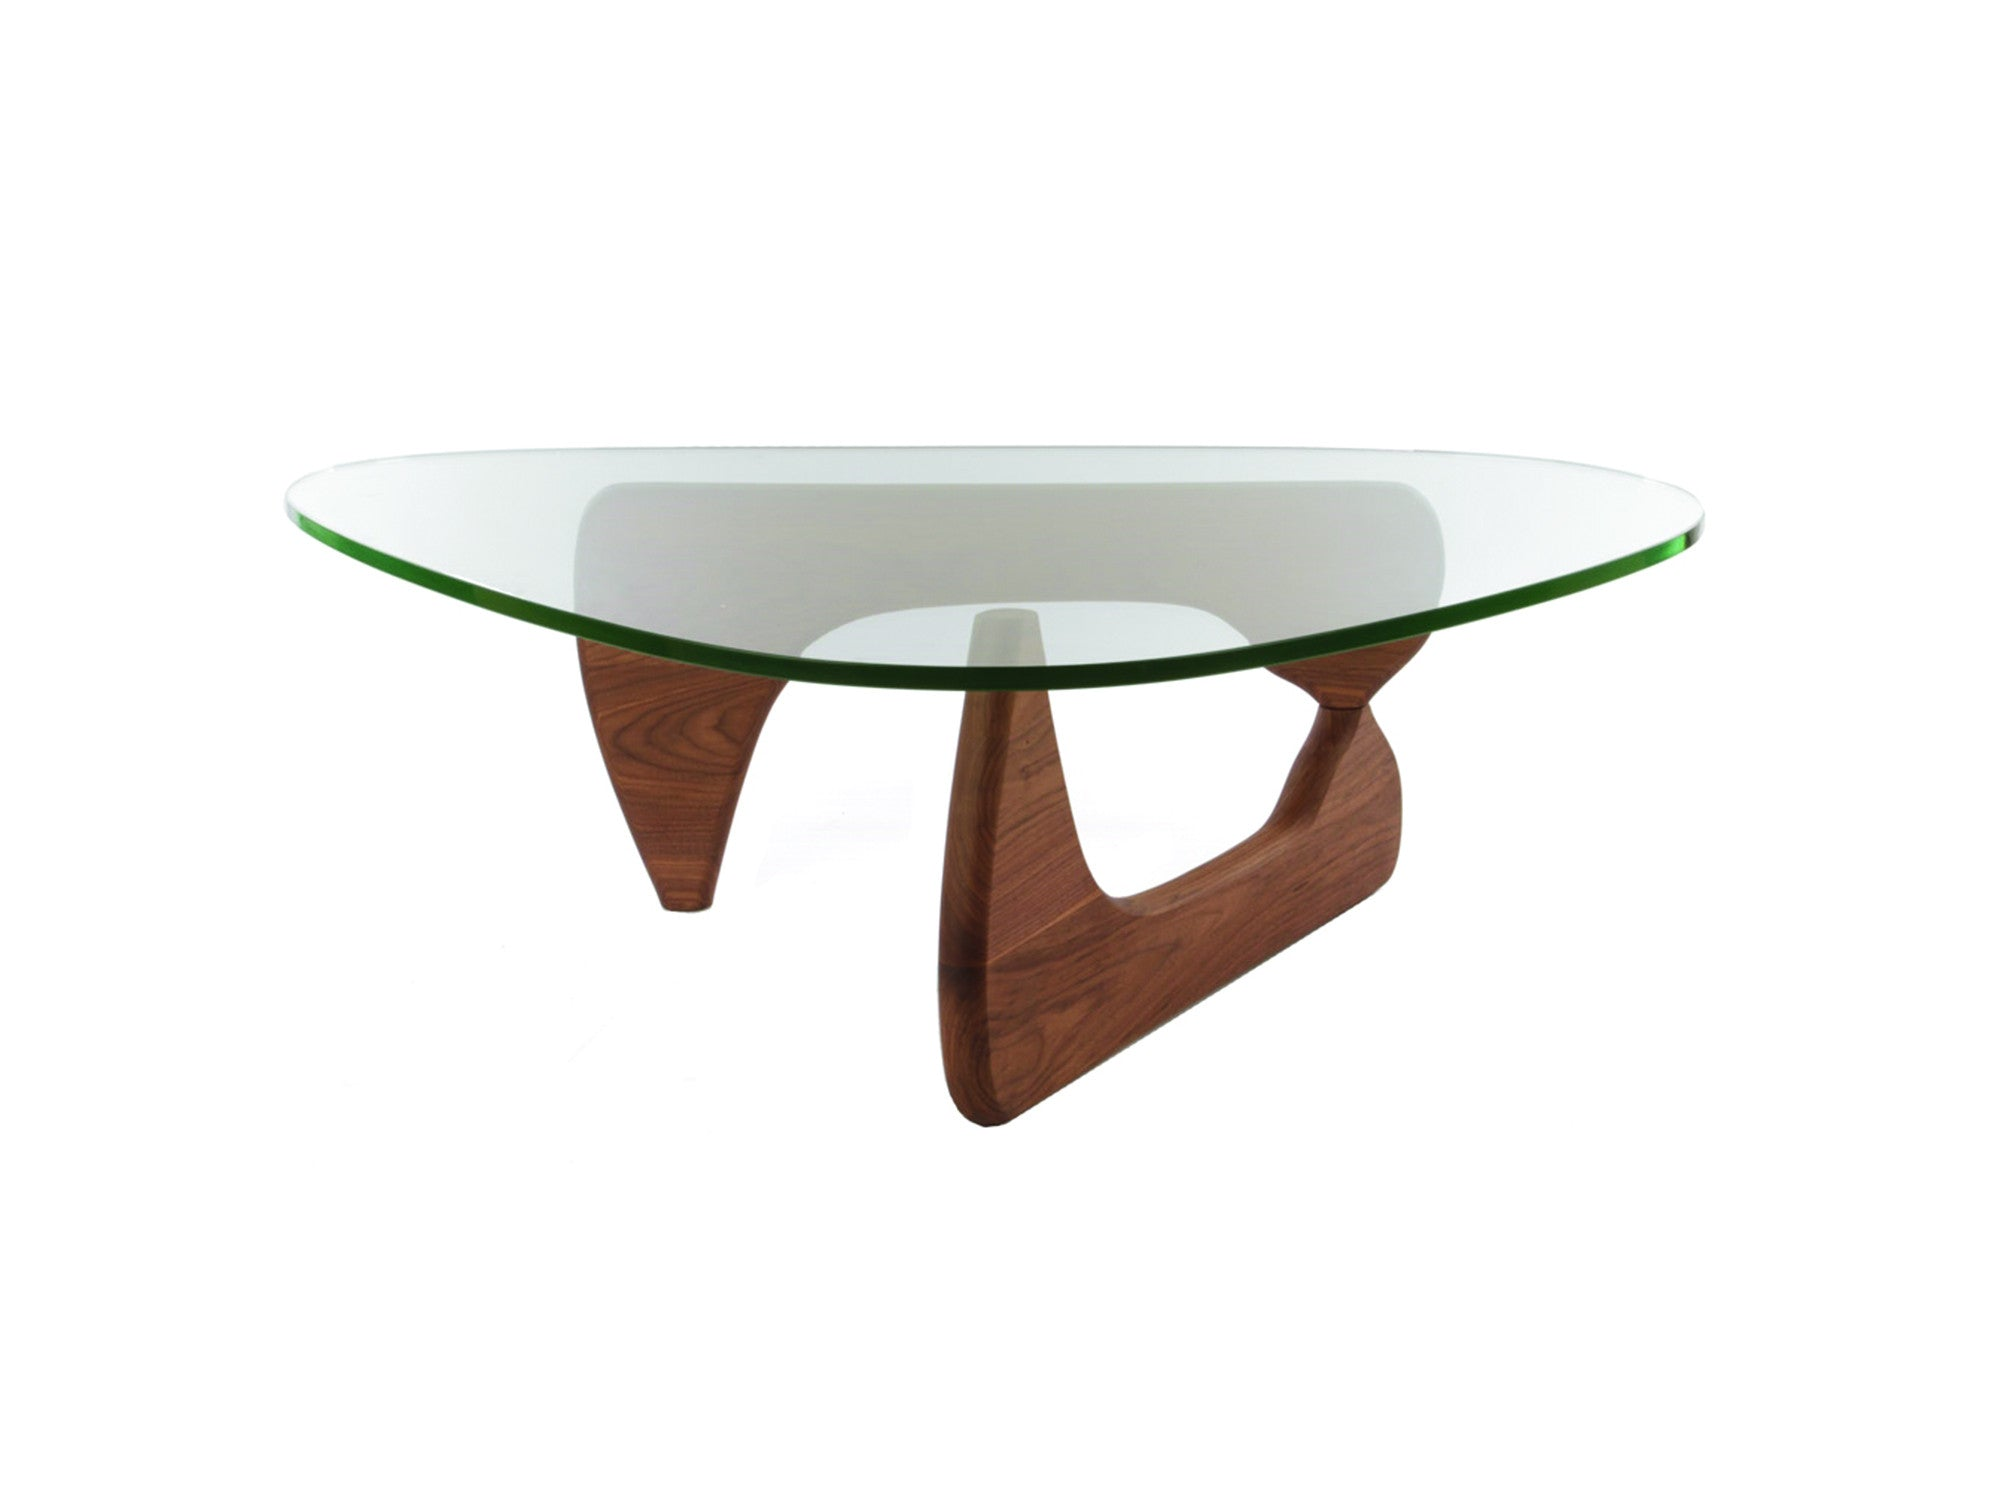 Newell Furniture Noguchi Style Coffee Table Walnut Meubles Newell Furniture